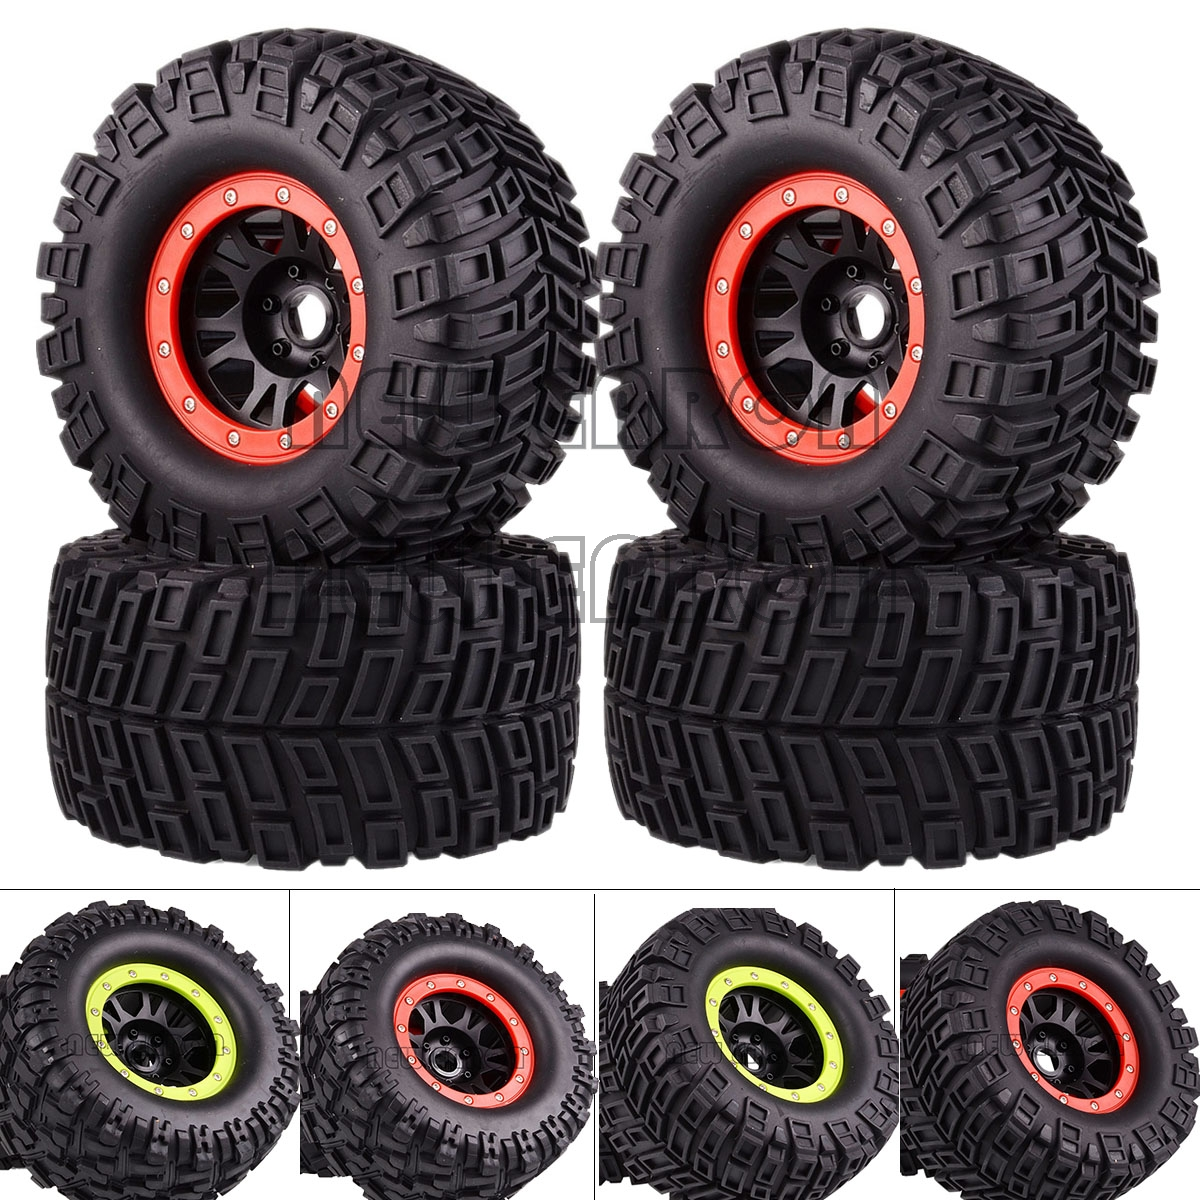 NEW ENRON 4PCS WHEEL & 170MM TIRES 17MM HEX FOR RC 1/8 Monster Truck HPI Savage FLUX HSP Traxxas HPI LOSI HSP NANDA